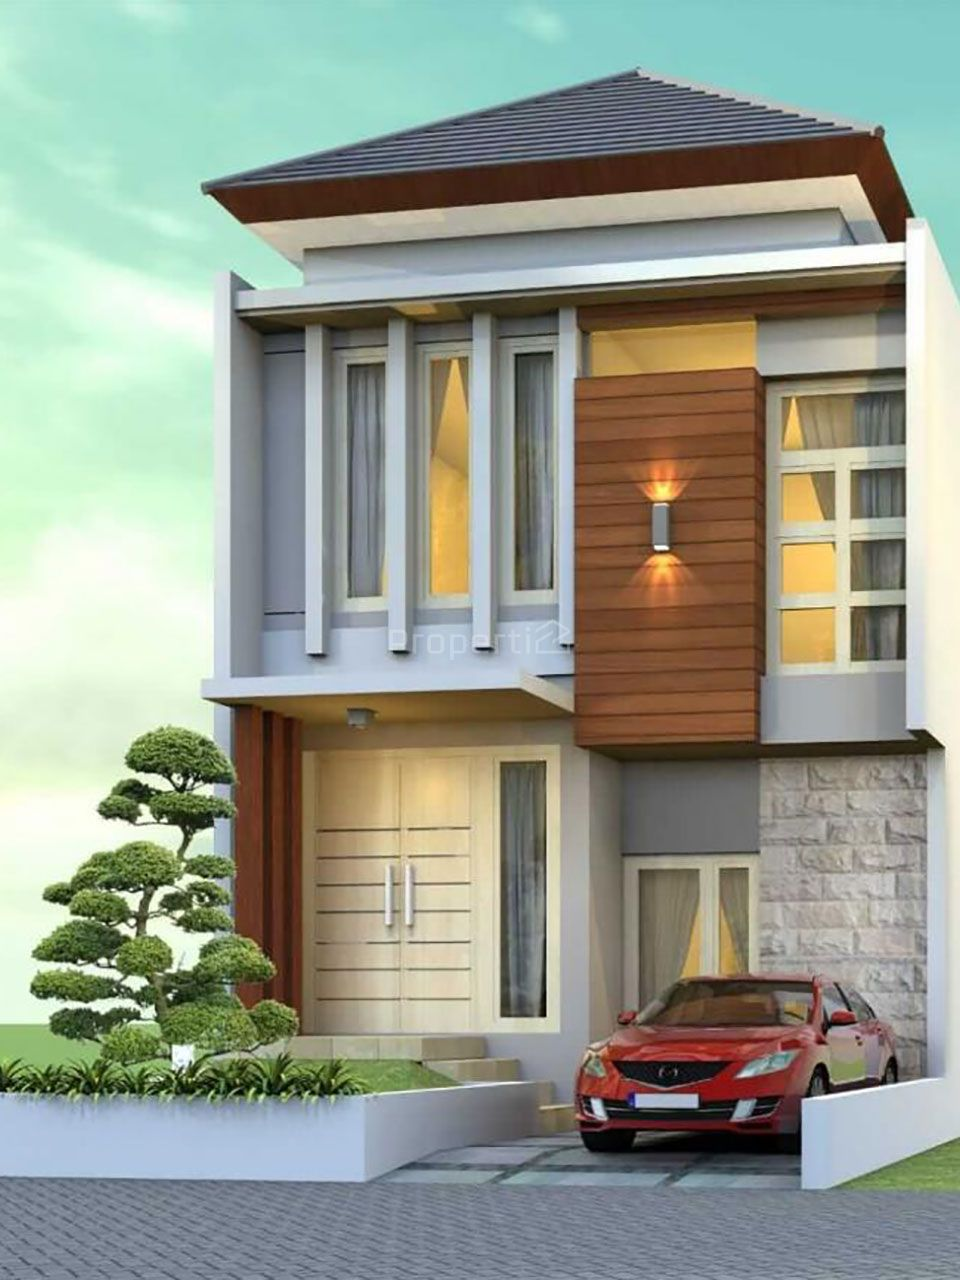 2-Storey House in Sharia Residence in Malang City, Jawa Timur